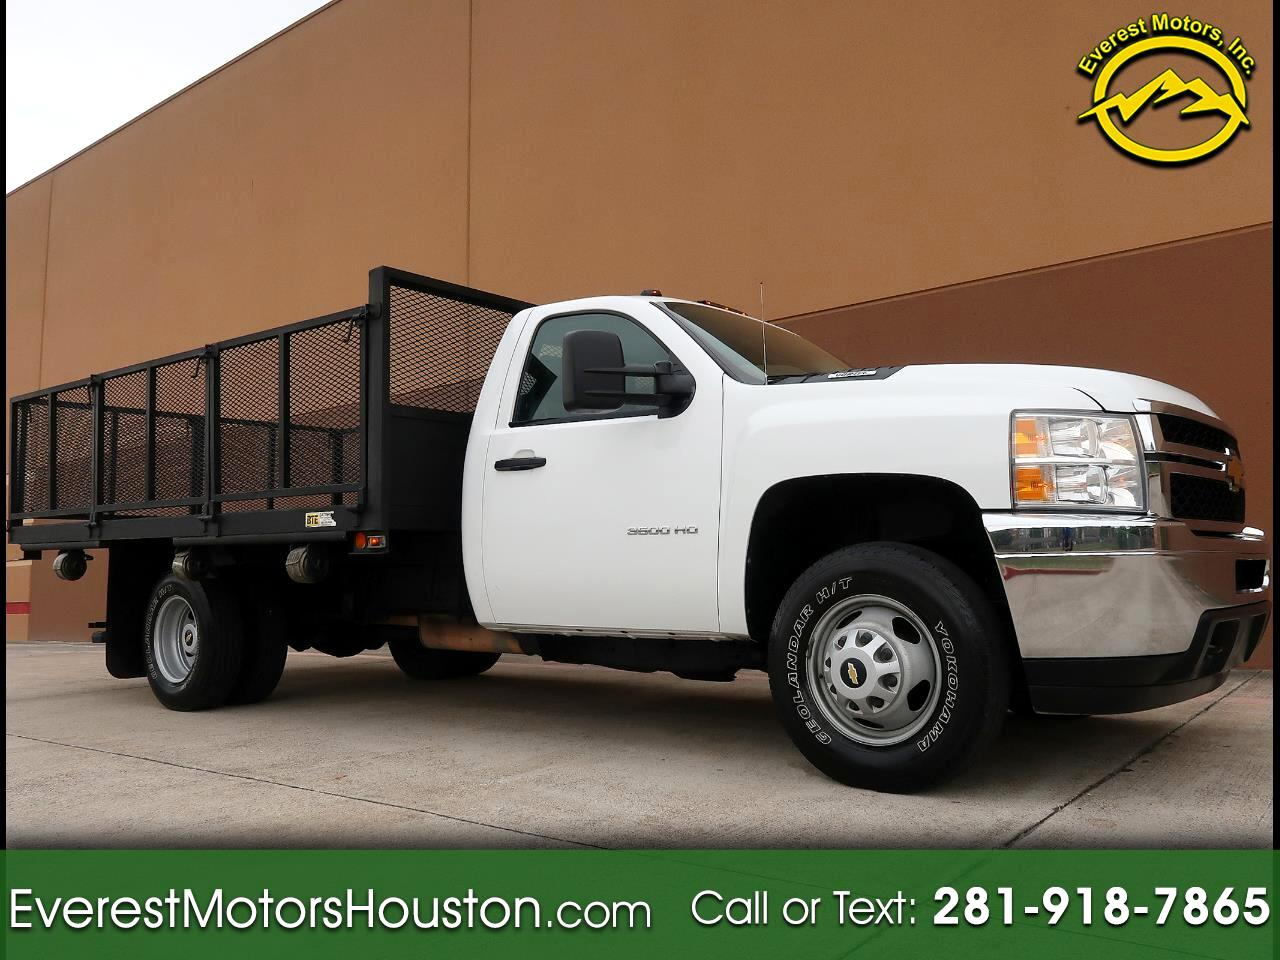 2012 Chevrolet Silverado 3500HD CHASSIS AND CAB WORK TRUCK LONG BED 2WD